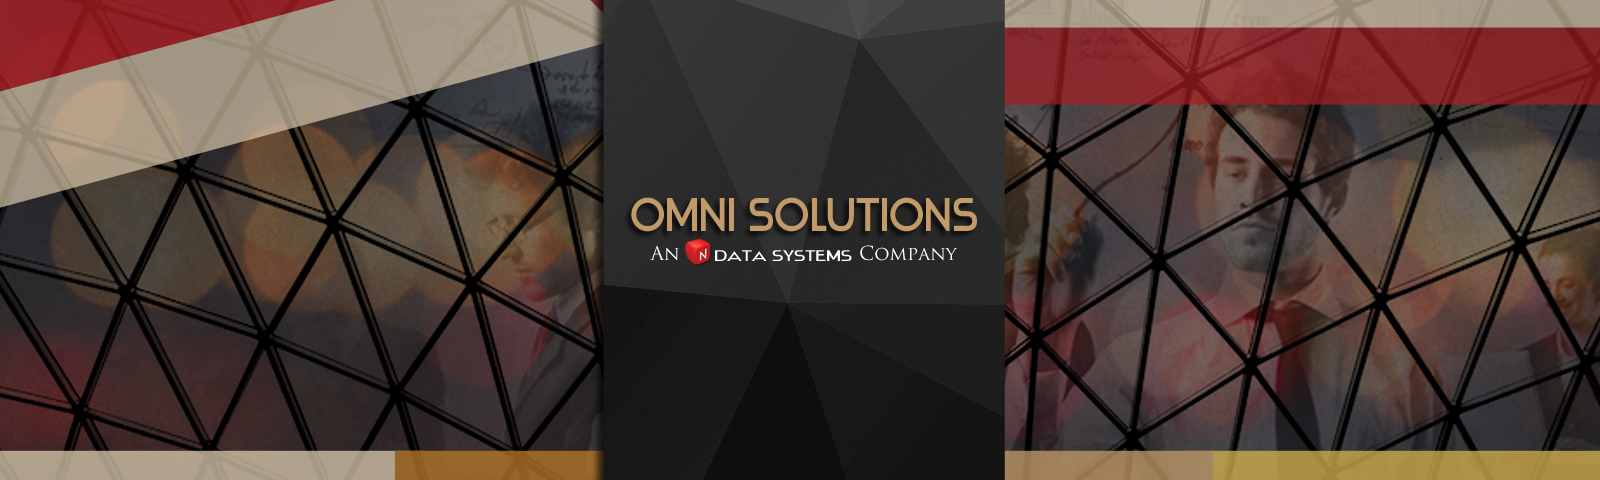 omni solutions